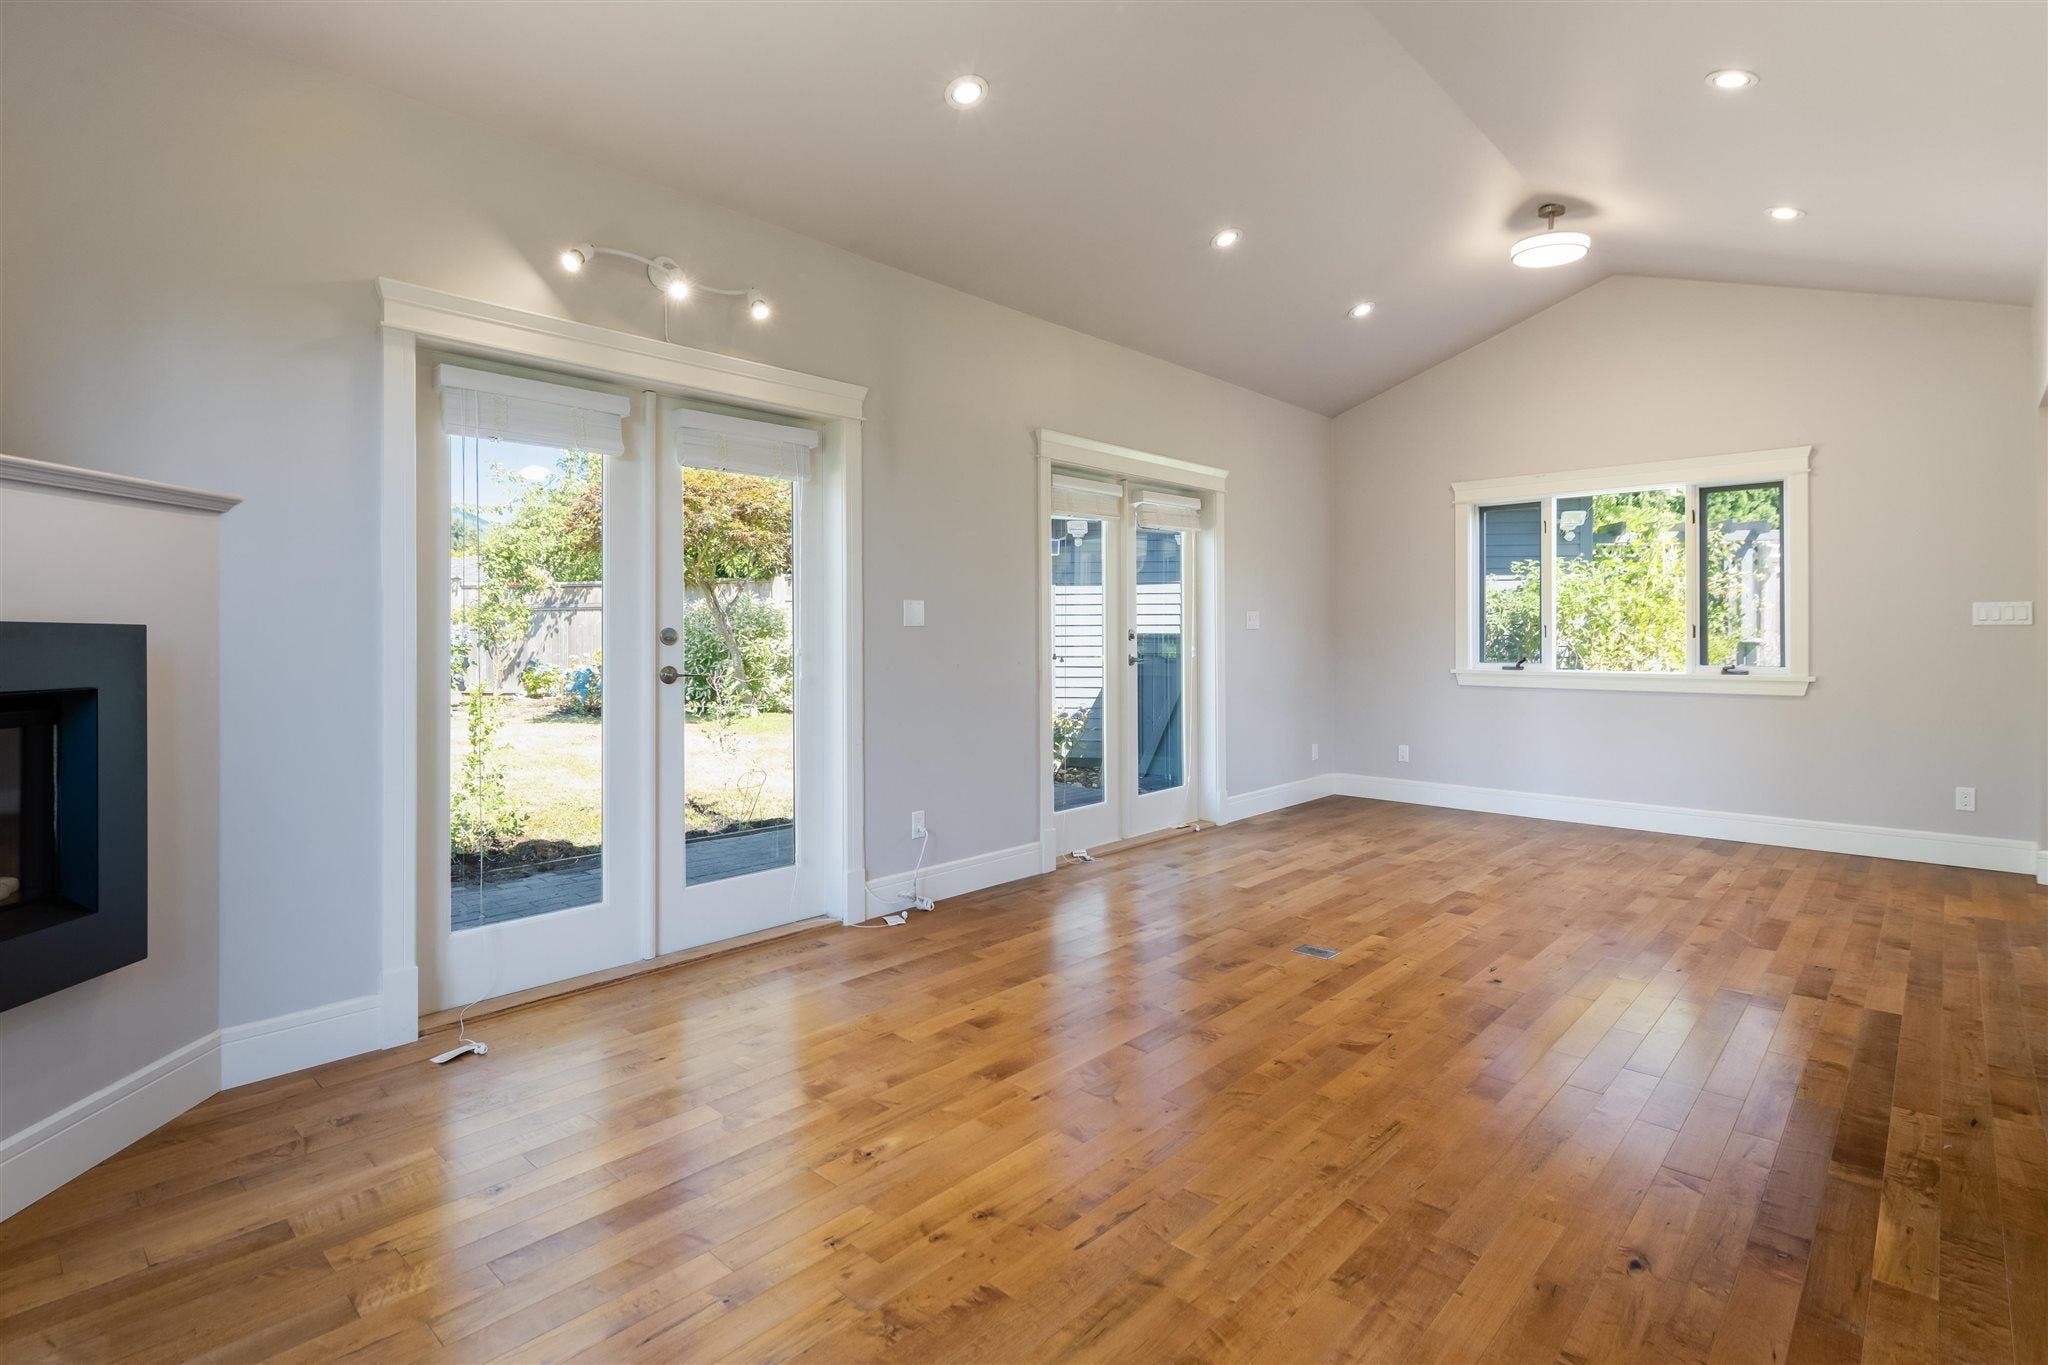 960 W QUEENS ROAD - Edgemont House/Single Family for sale, 2 Bedrooms (R2623308) - #7